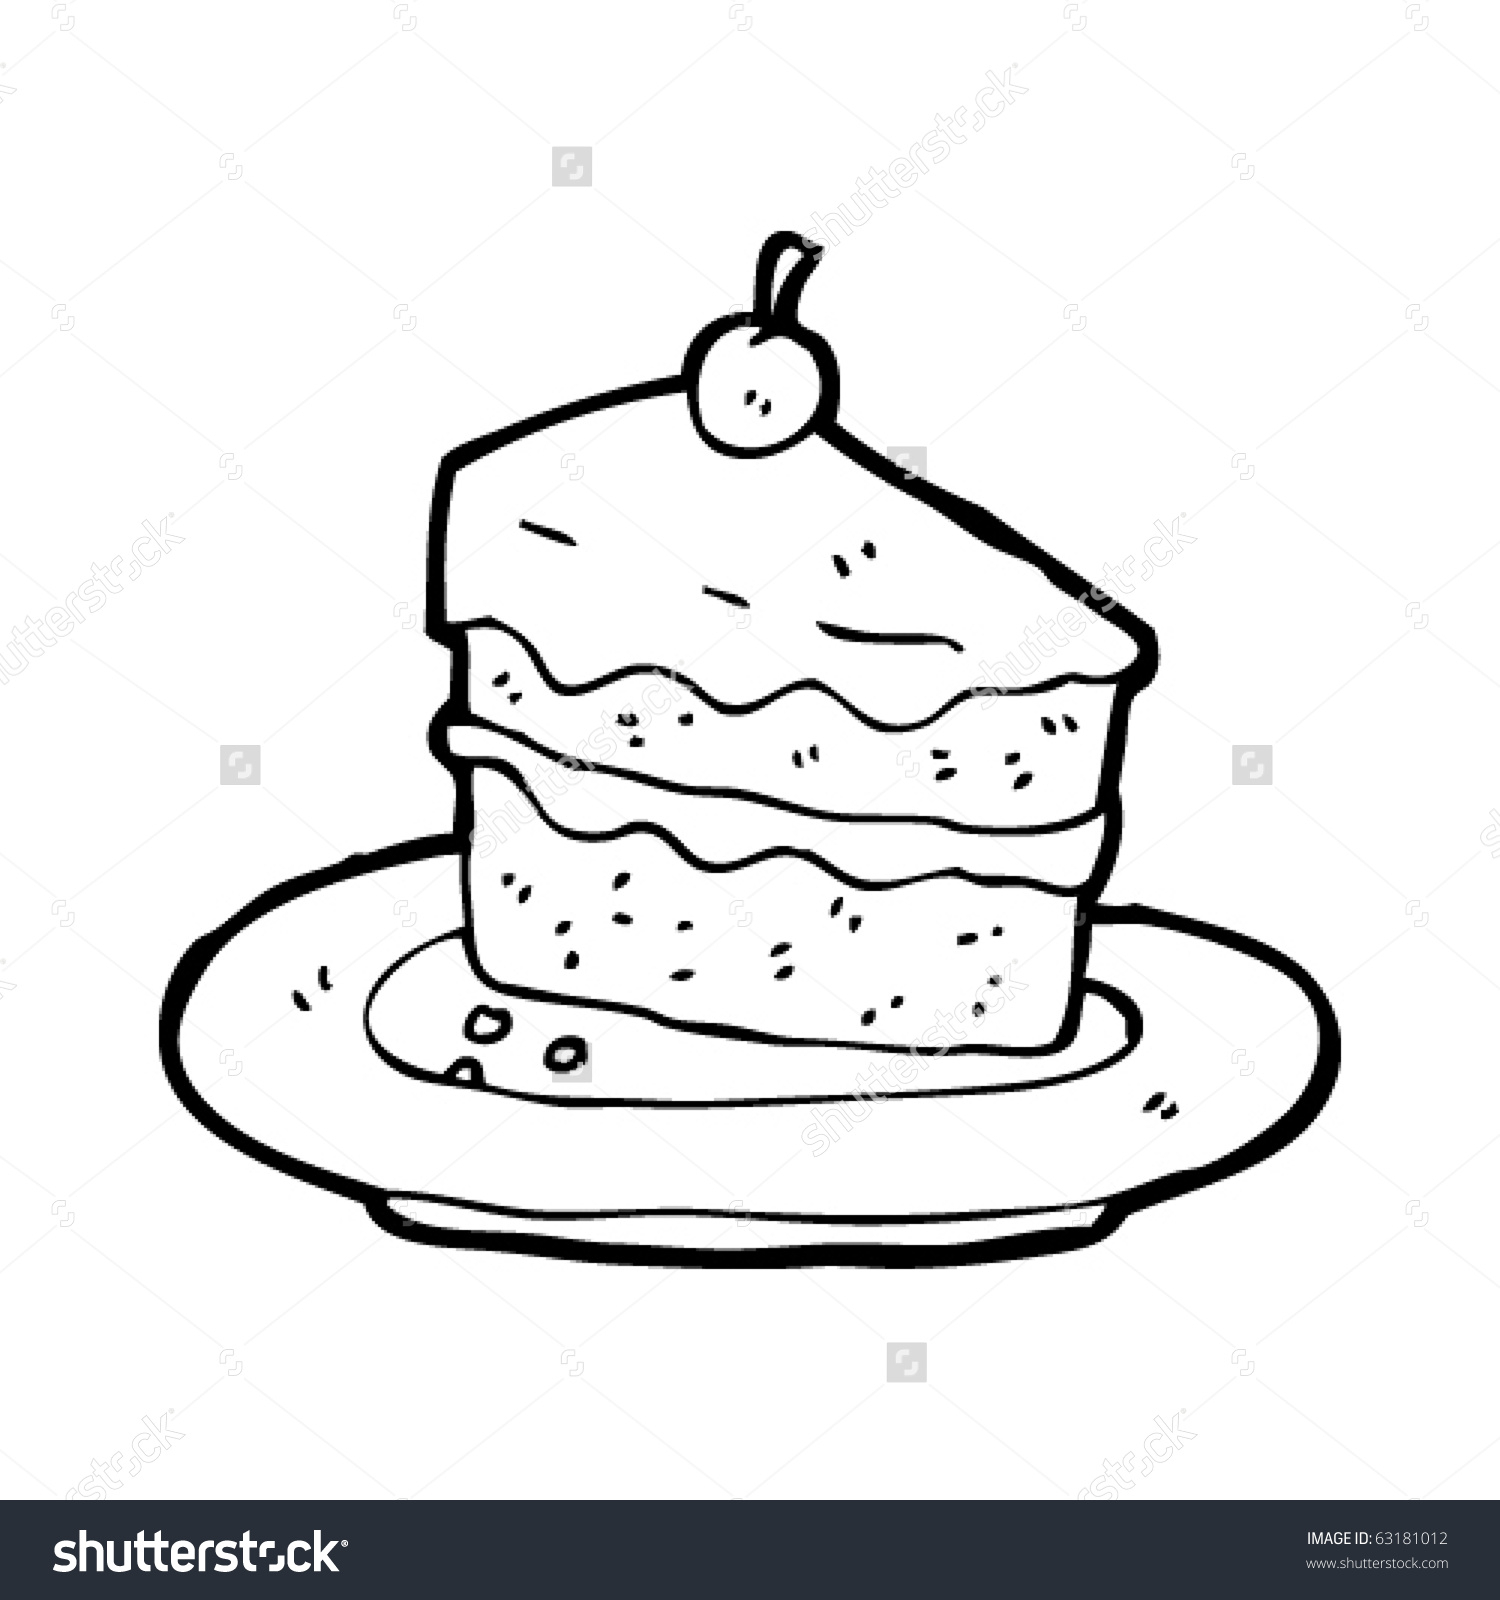 1500x1600 Cartoon Cake Drawing Slice Cake On Plate Cartoon Stock Vector